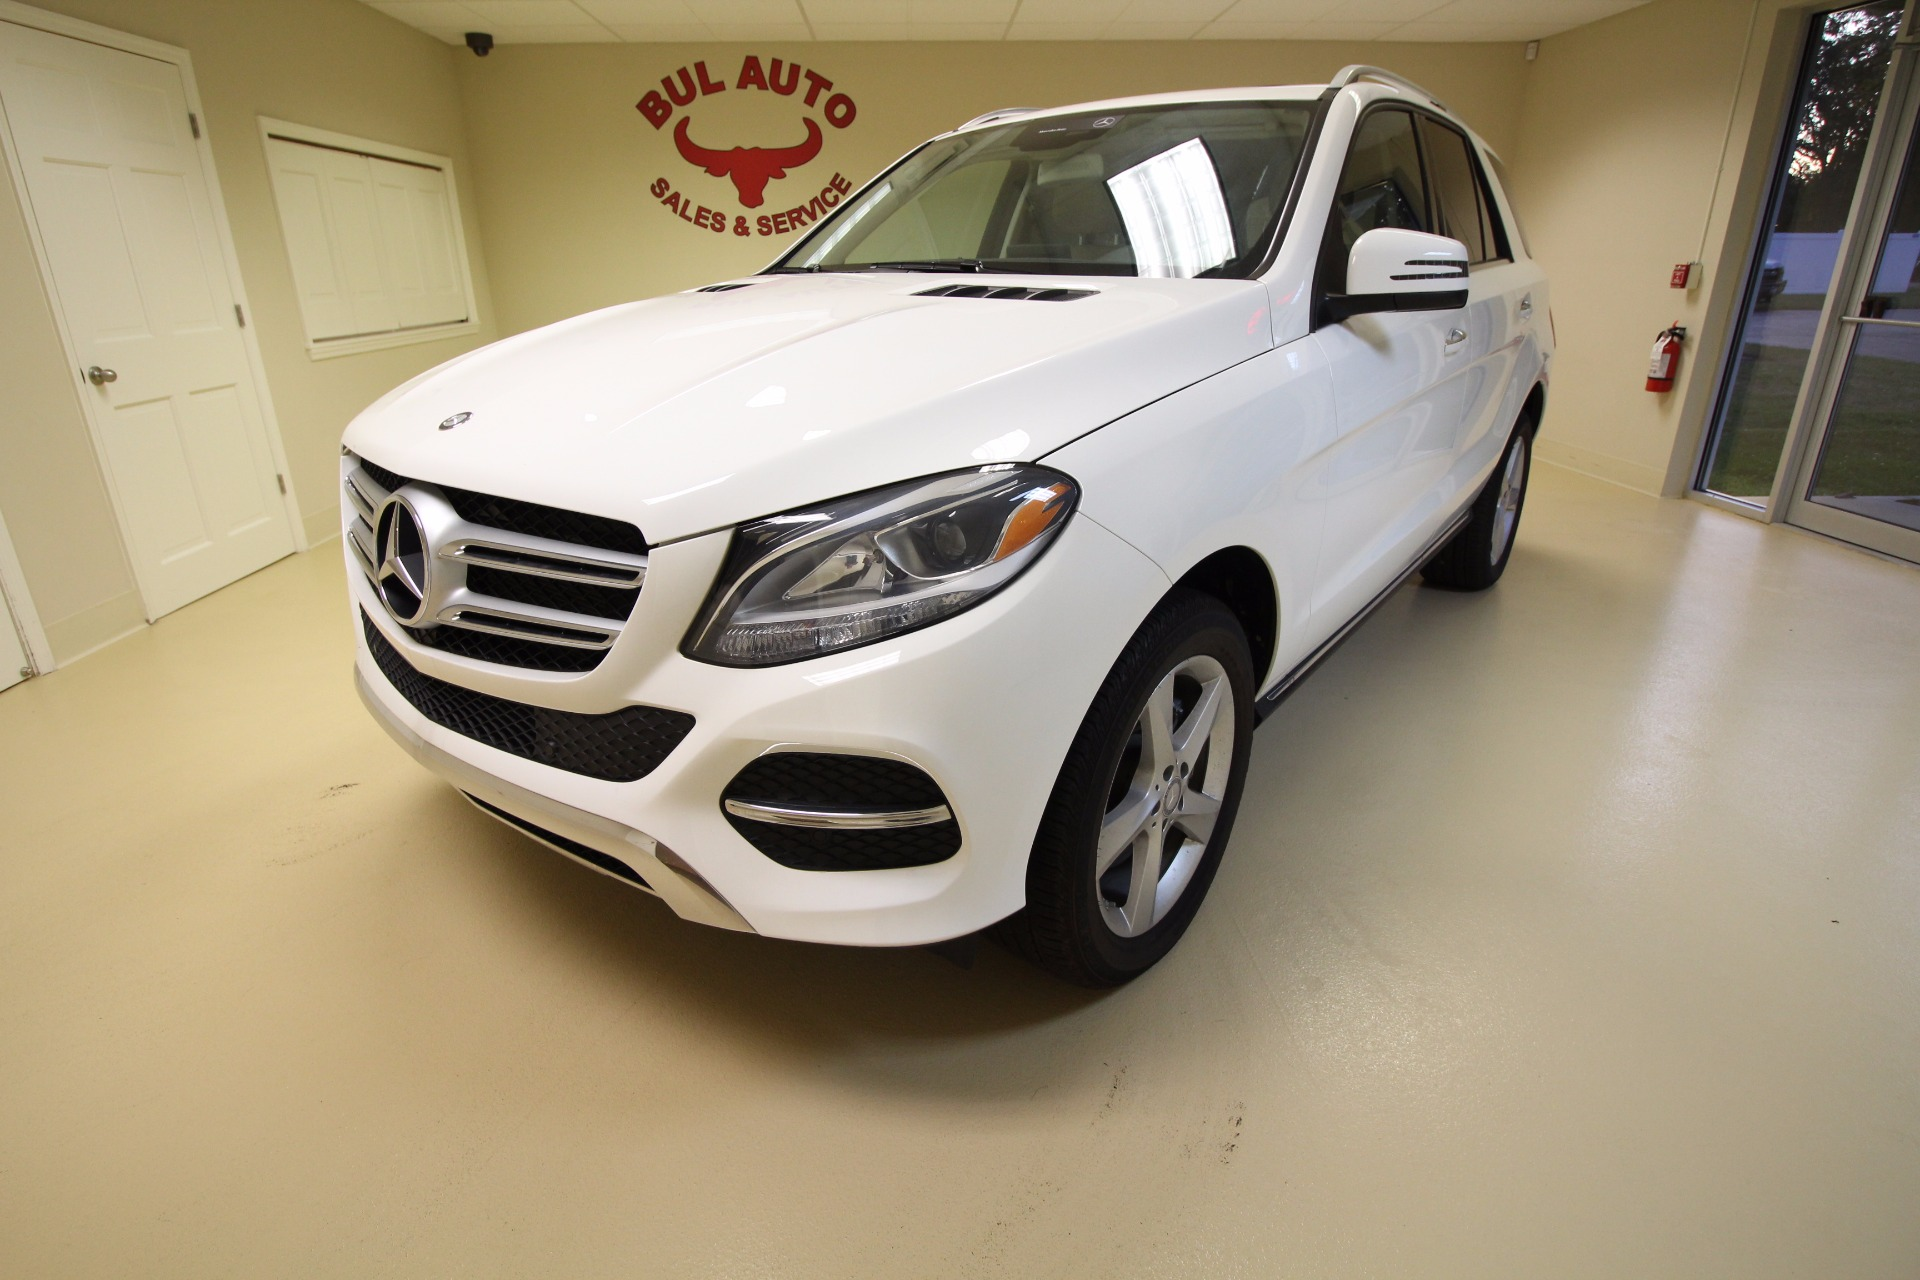 2016 mercedes benz gle class gle350 4matic stock 17197 for sale near albany ny ny mercedes. Black Bedroom Furniture Sets. Home Design Ideas